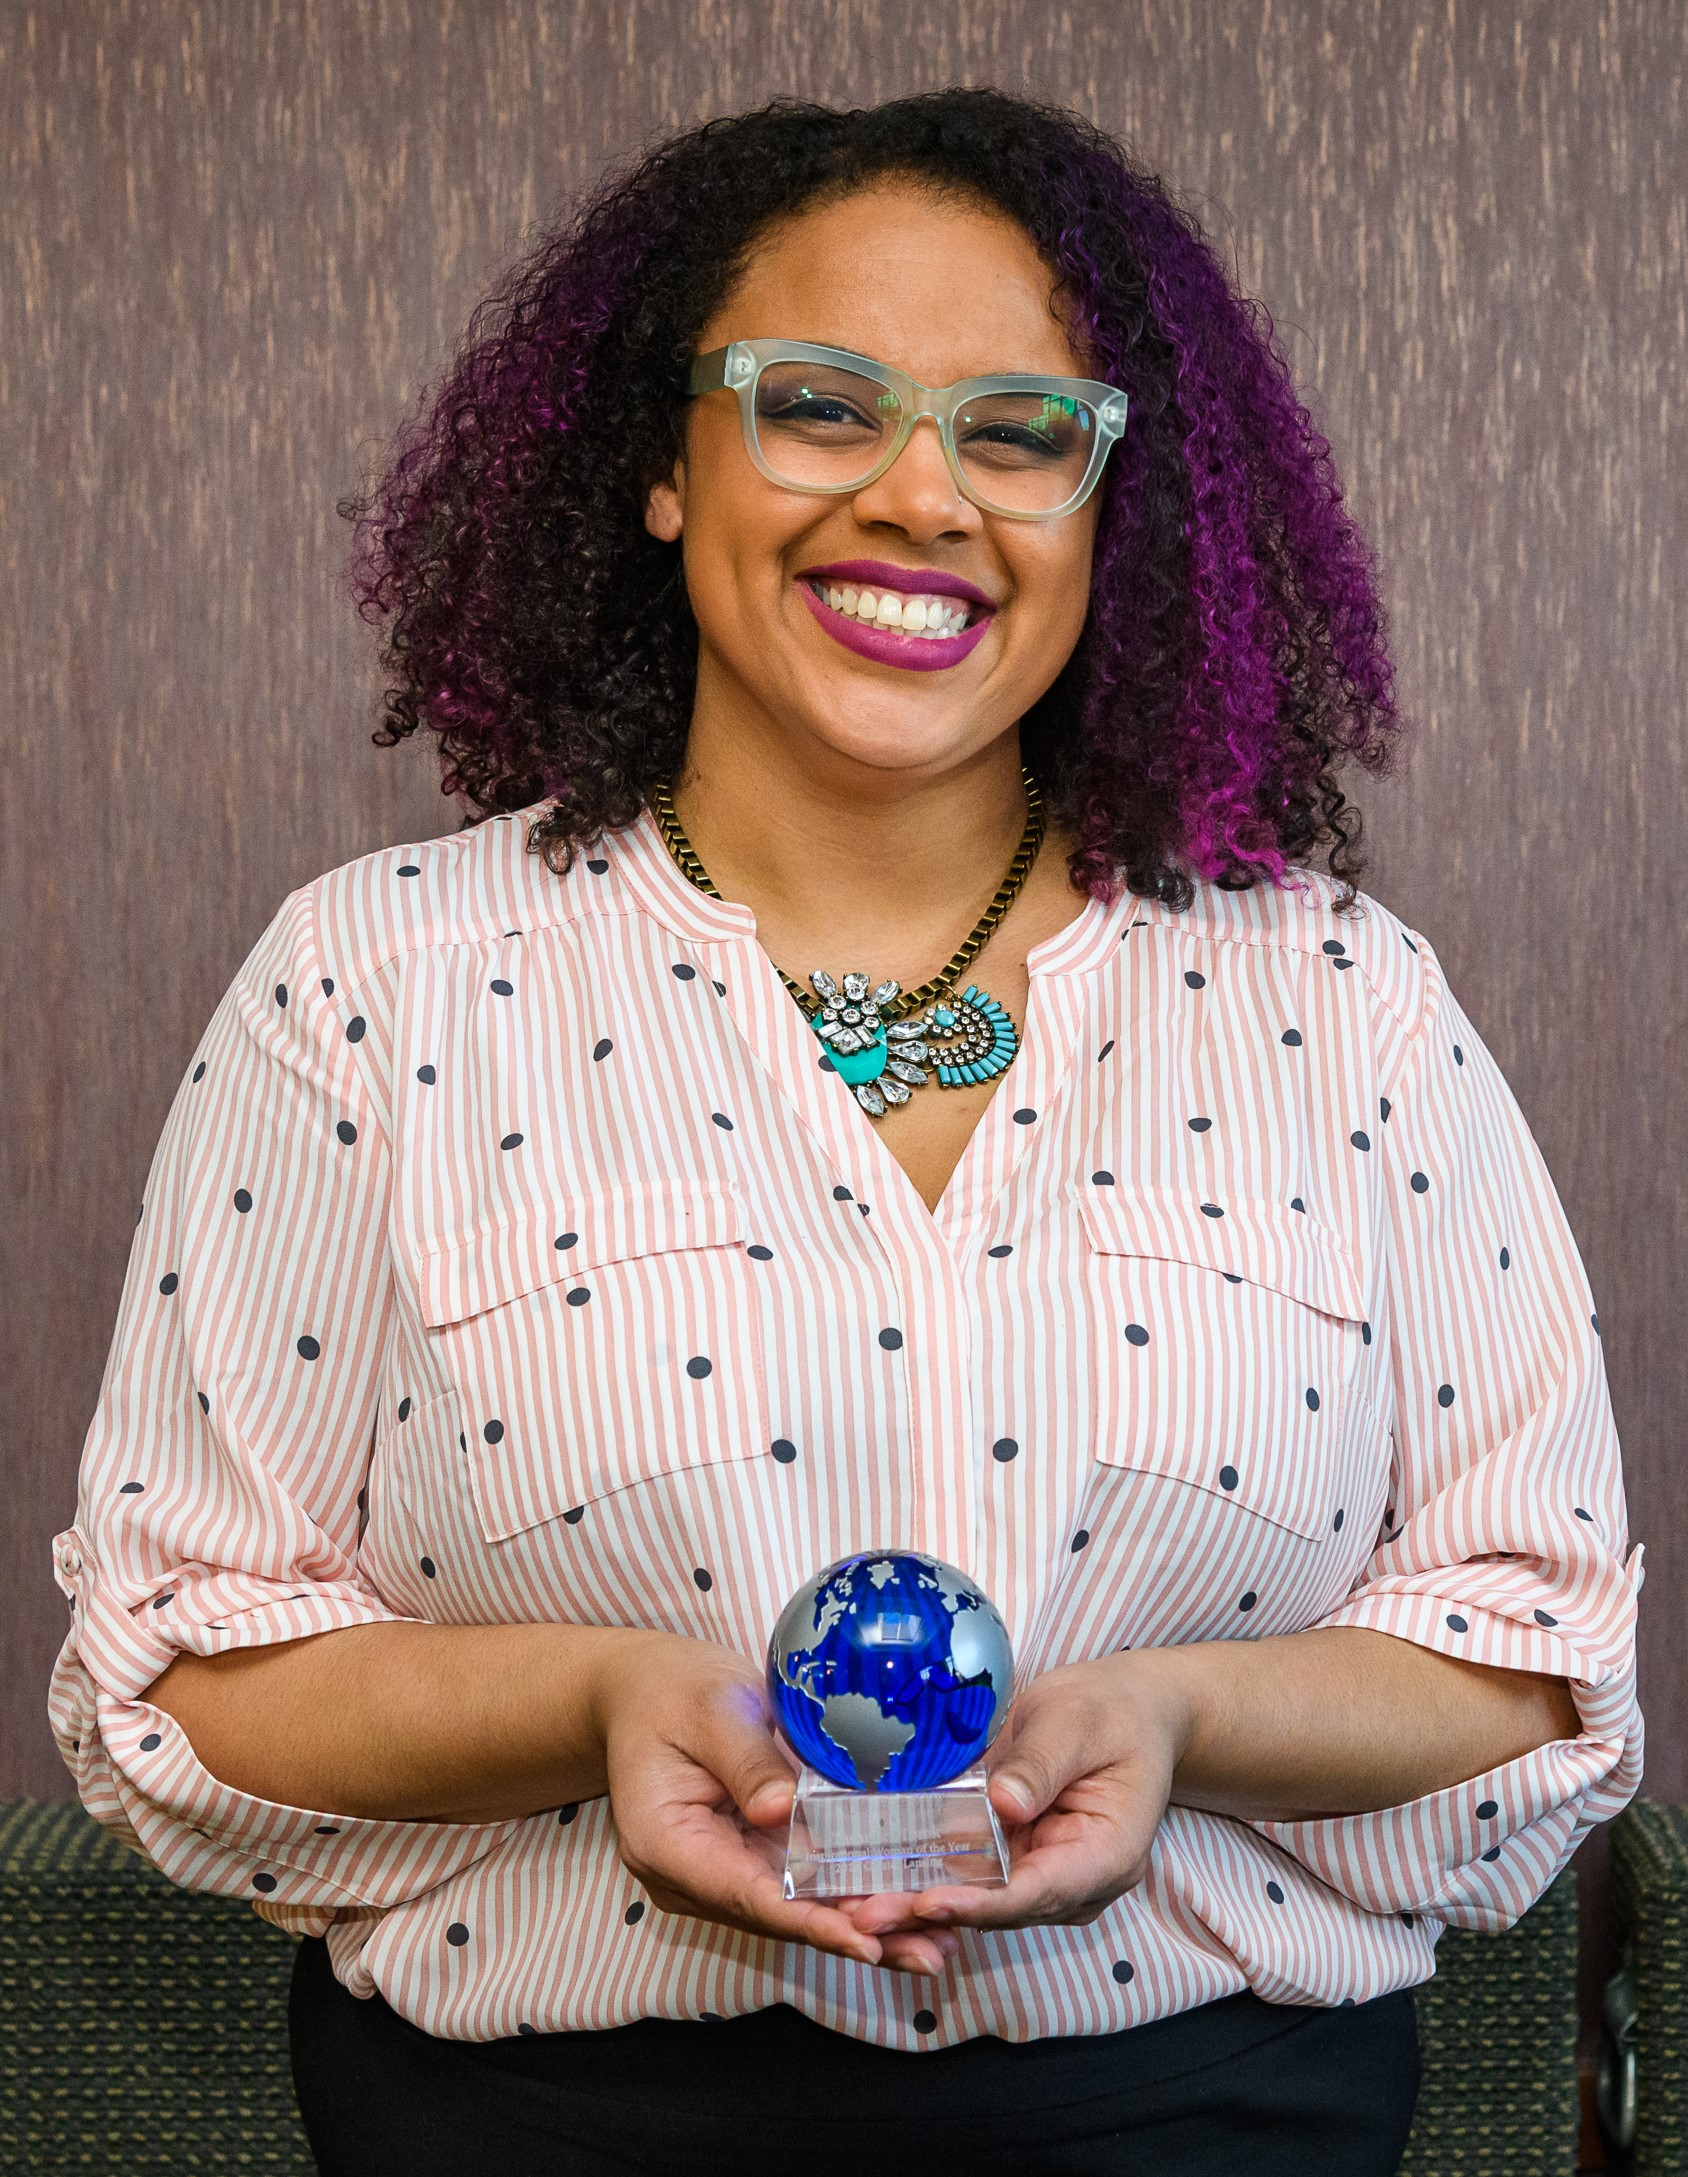 Tashmica Torok, the inaugural recipient of the Greater Lansing Inspirational Woman of the Year Award, in 2019.